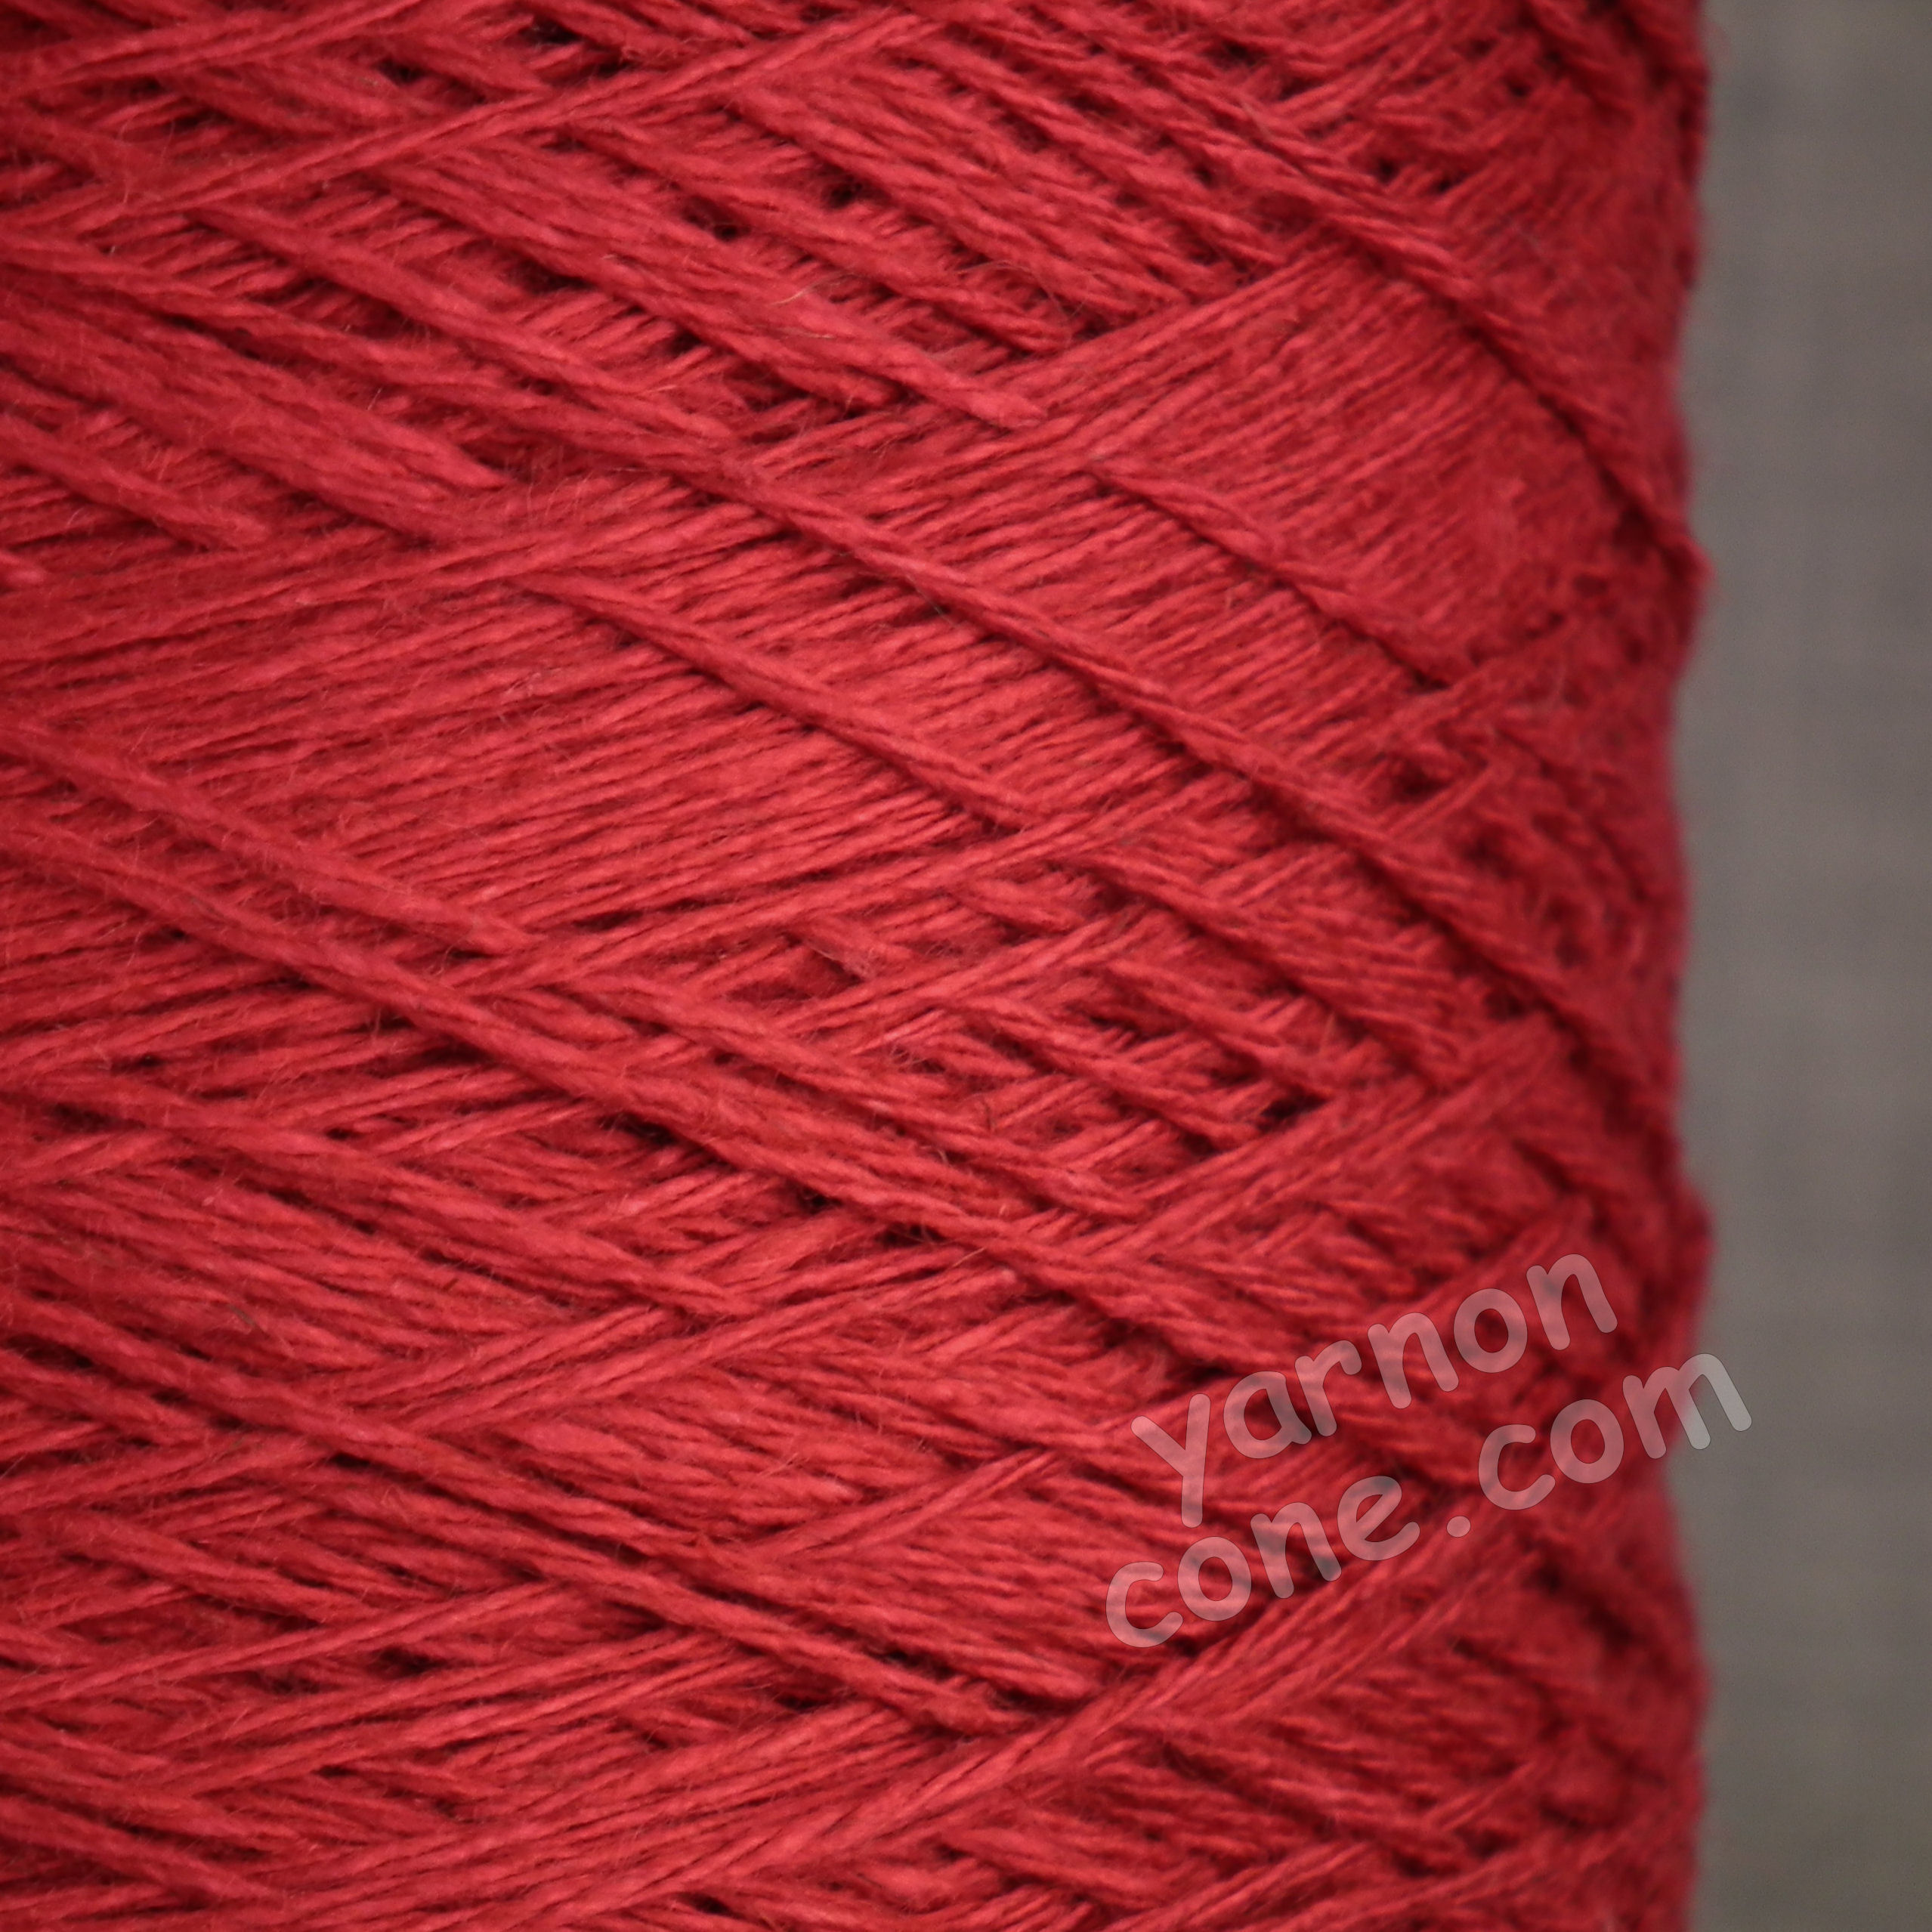 soft 4 ply viscose linen yarn on cone knitting weaving crochet scarlet red crimson